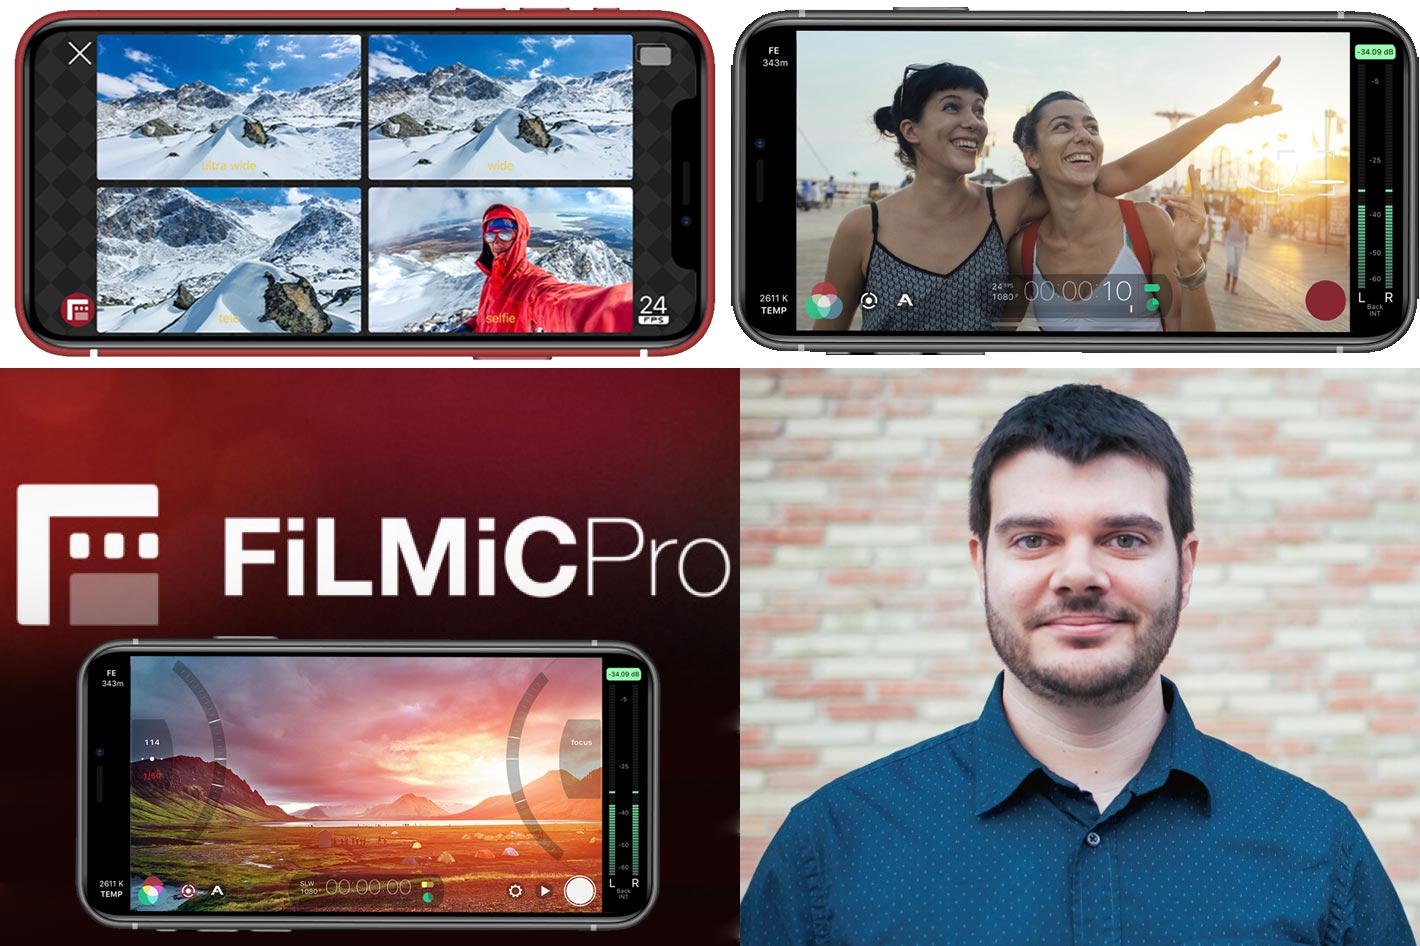 FiLMiC expands to Europe to accelerate mobile cinema